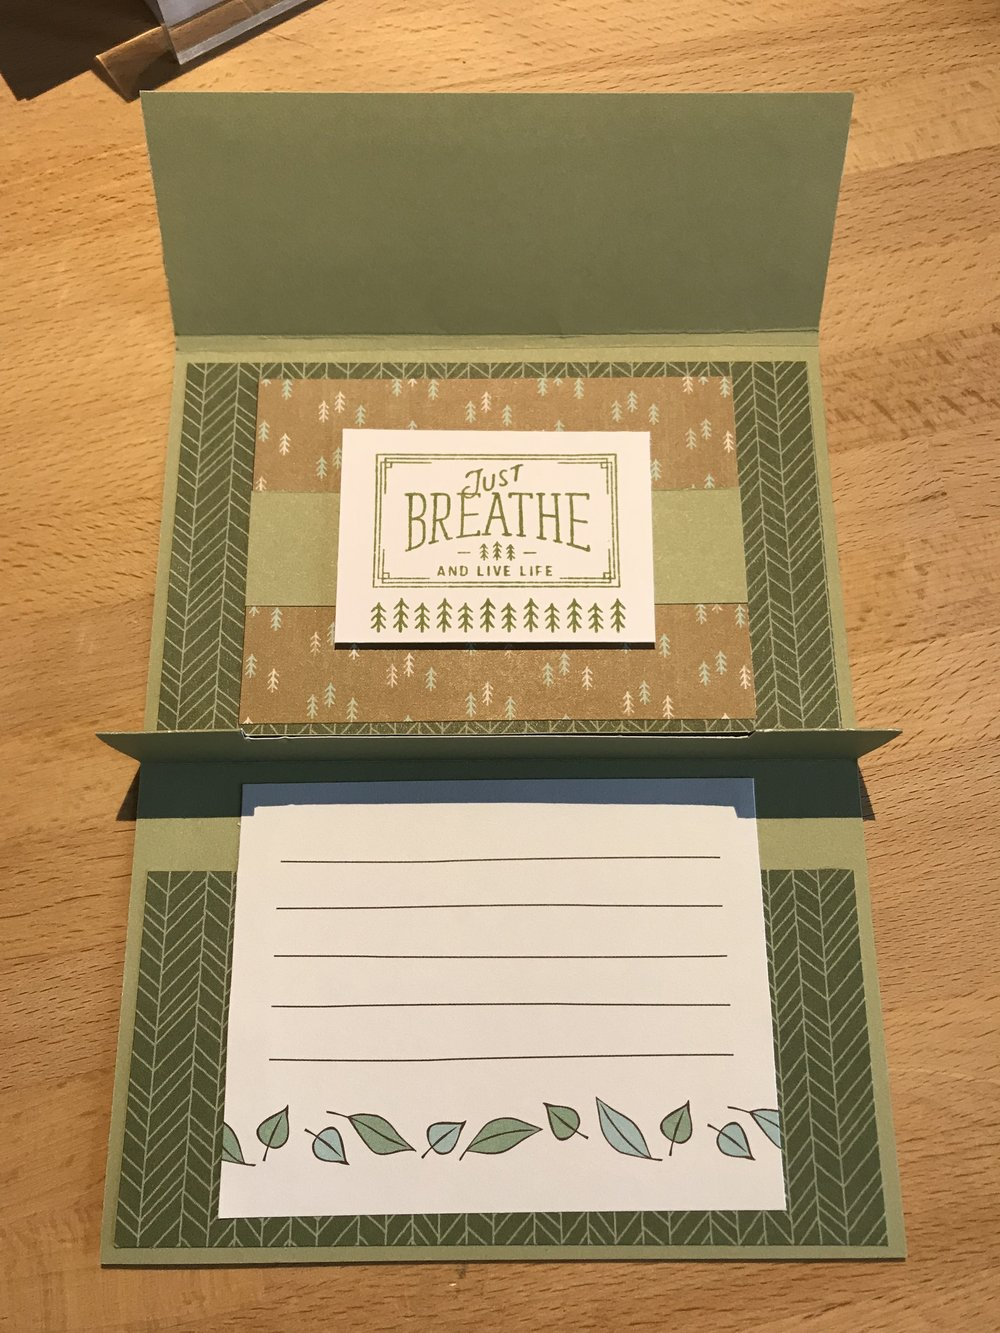 Fresh Air Gift Card Holder (CC tutorial) Inside wo GC.JPG